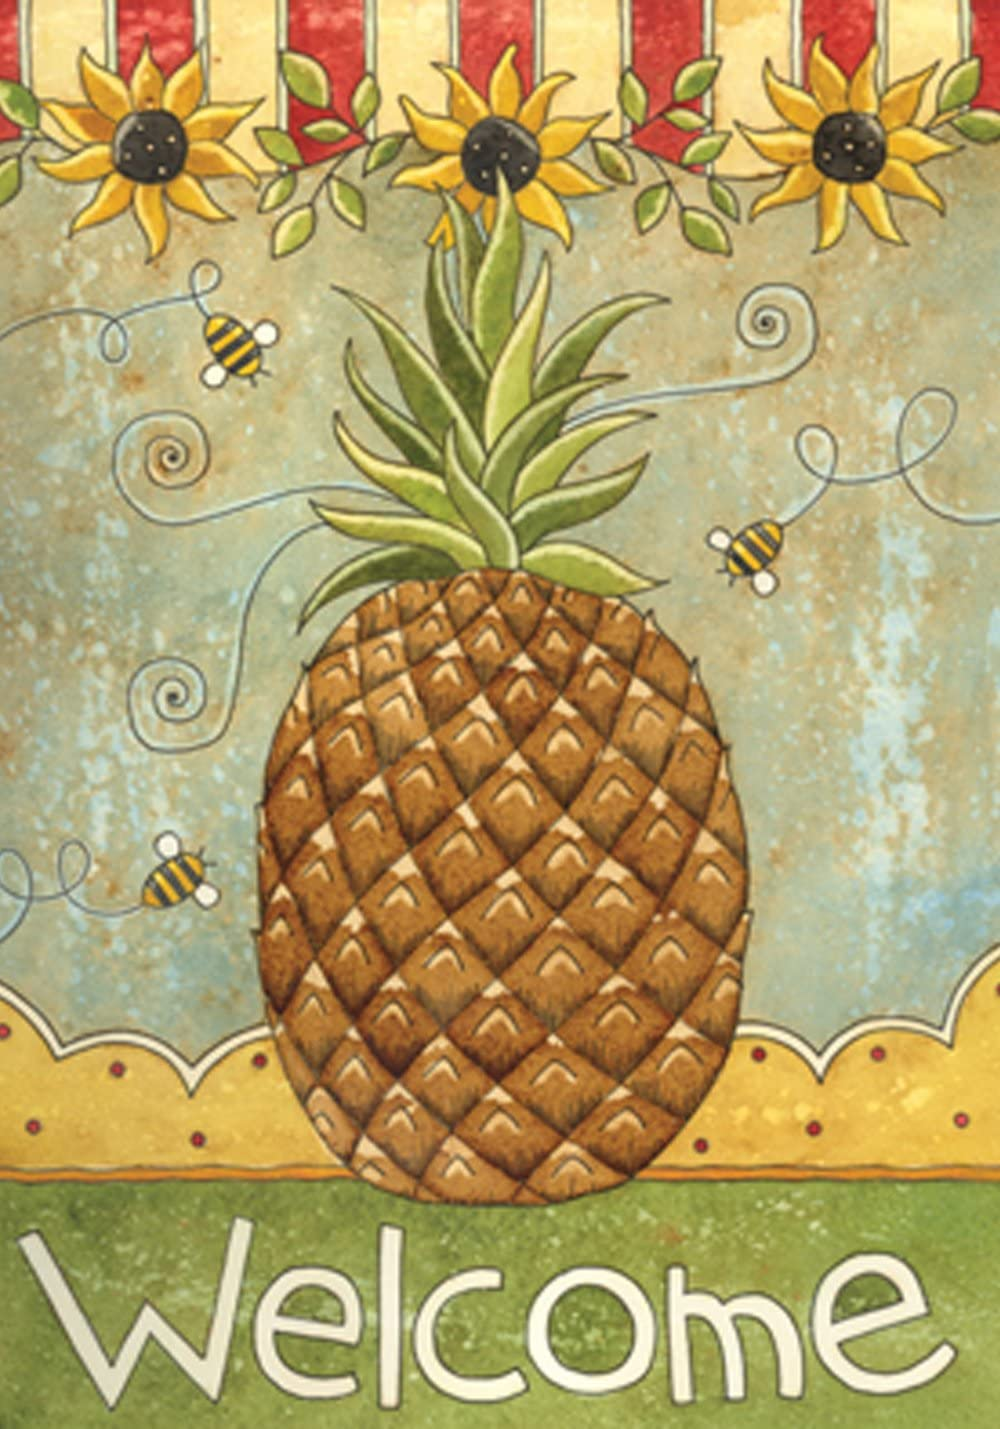 Toland Home Garden Sunflowers and Pineapple 12.5 x 18 Inch Decorative Summer Fall Flower Bee Welcome Garden Flag